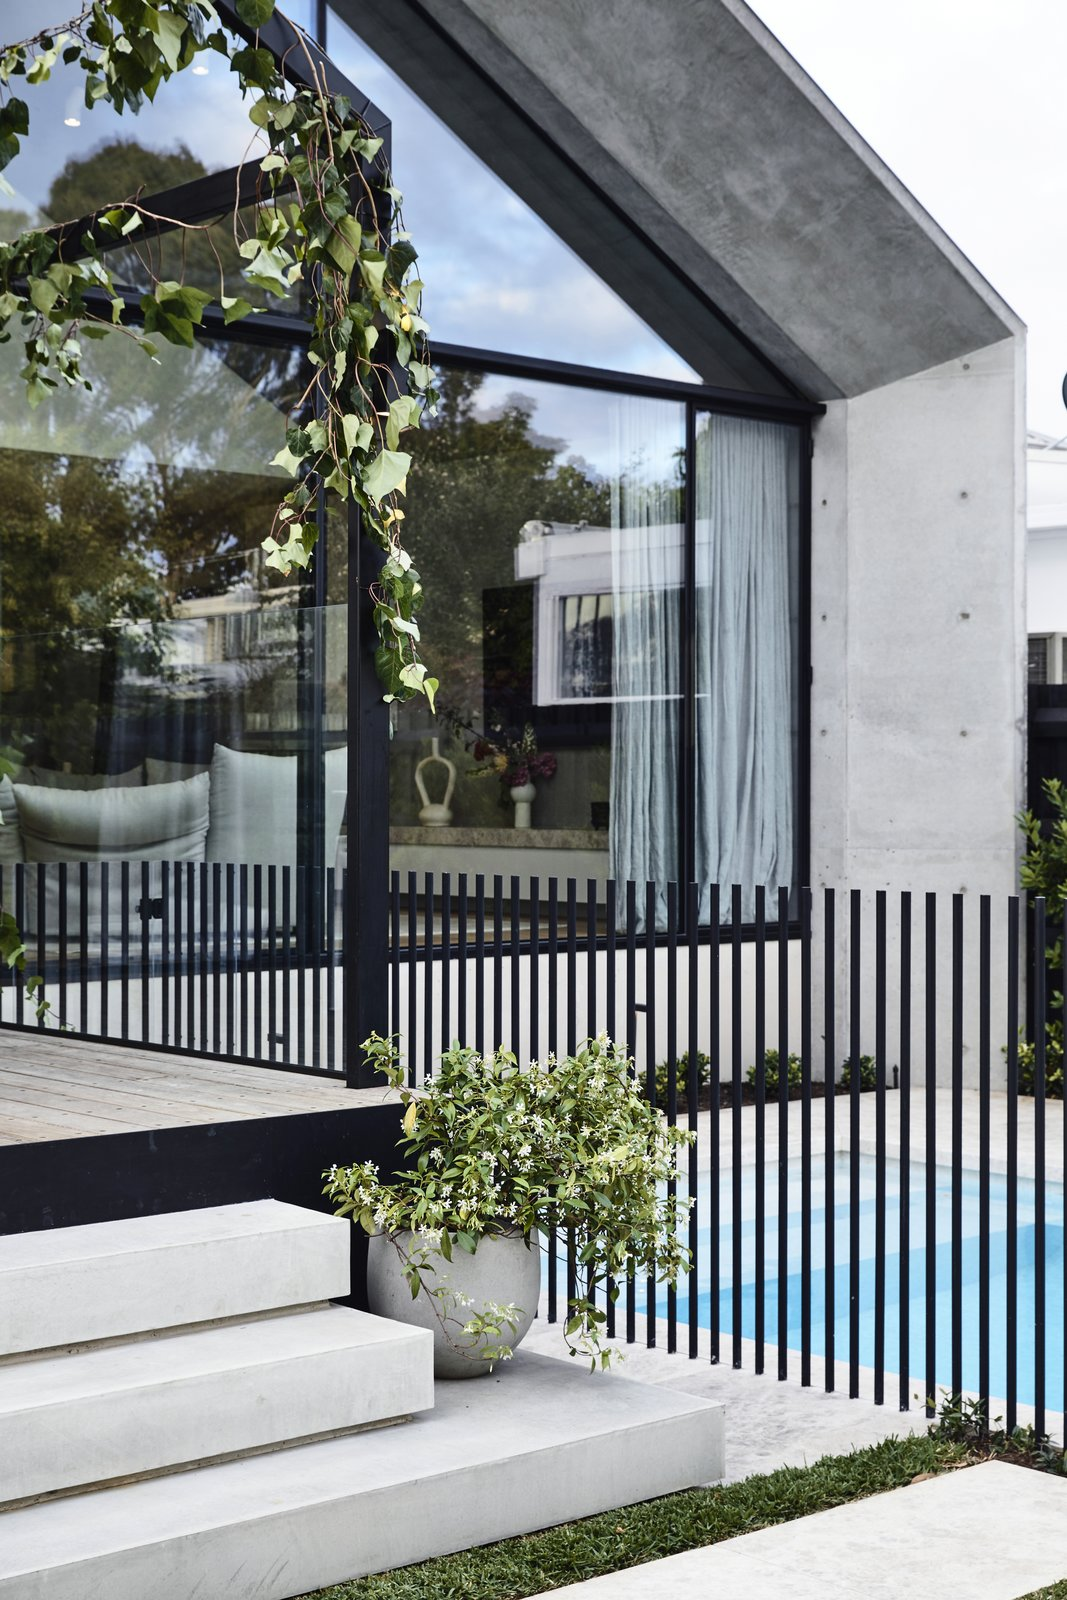 Scandizzo House, Kennon+ outdoor space